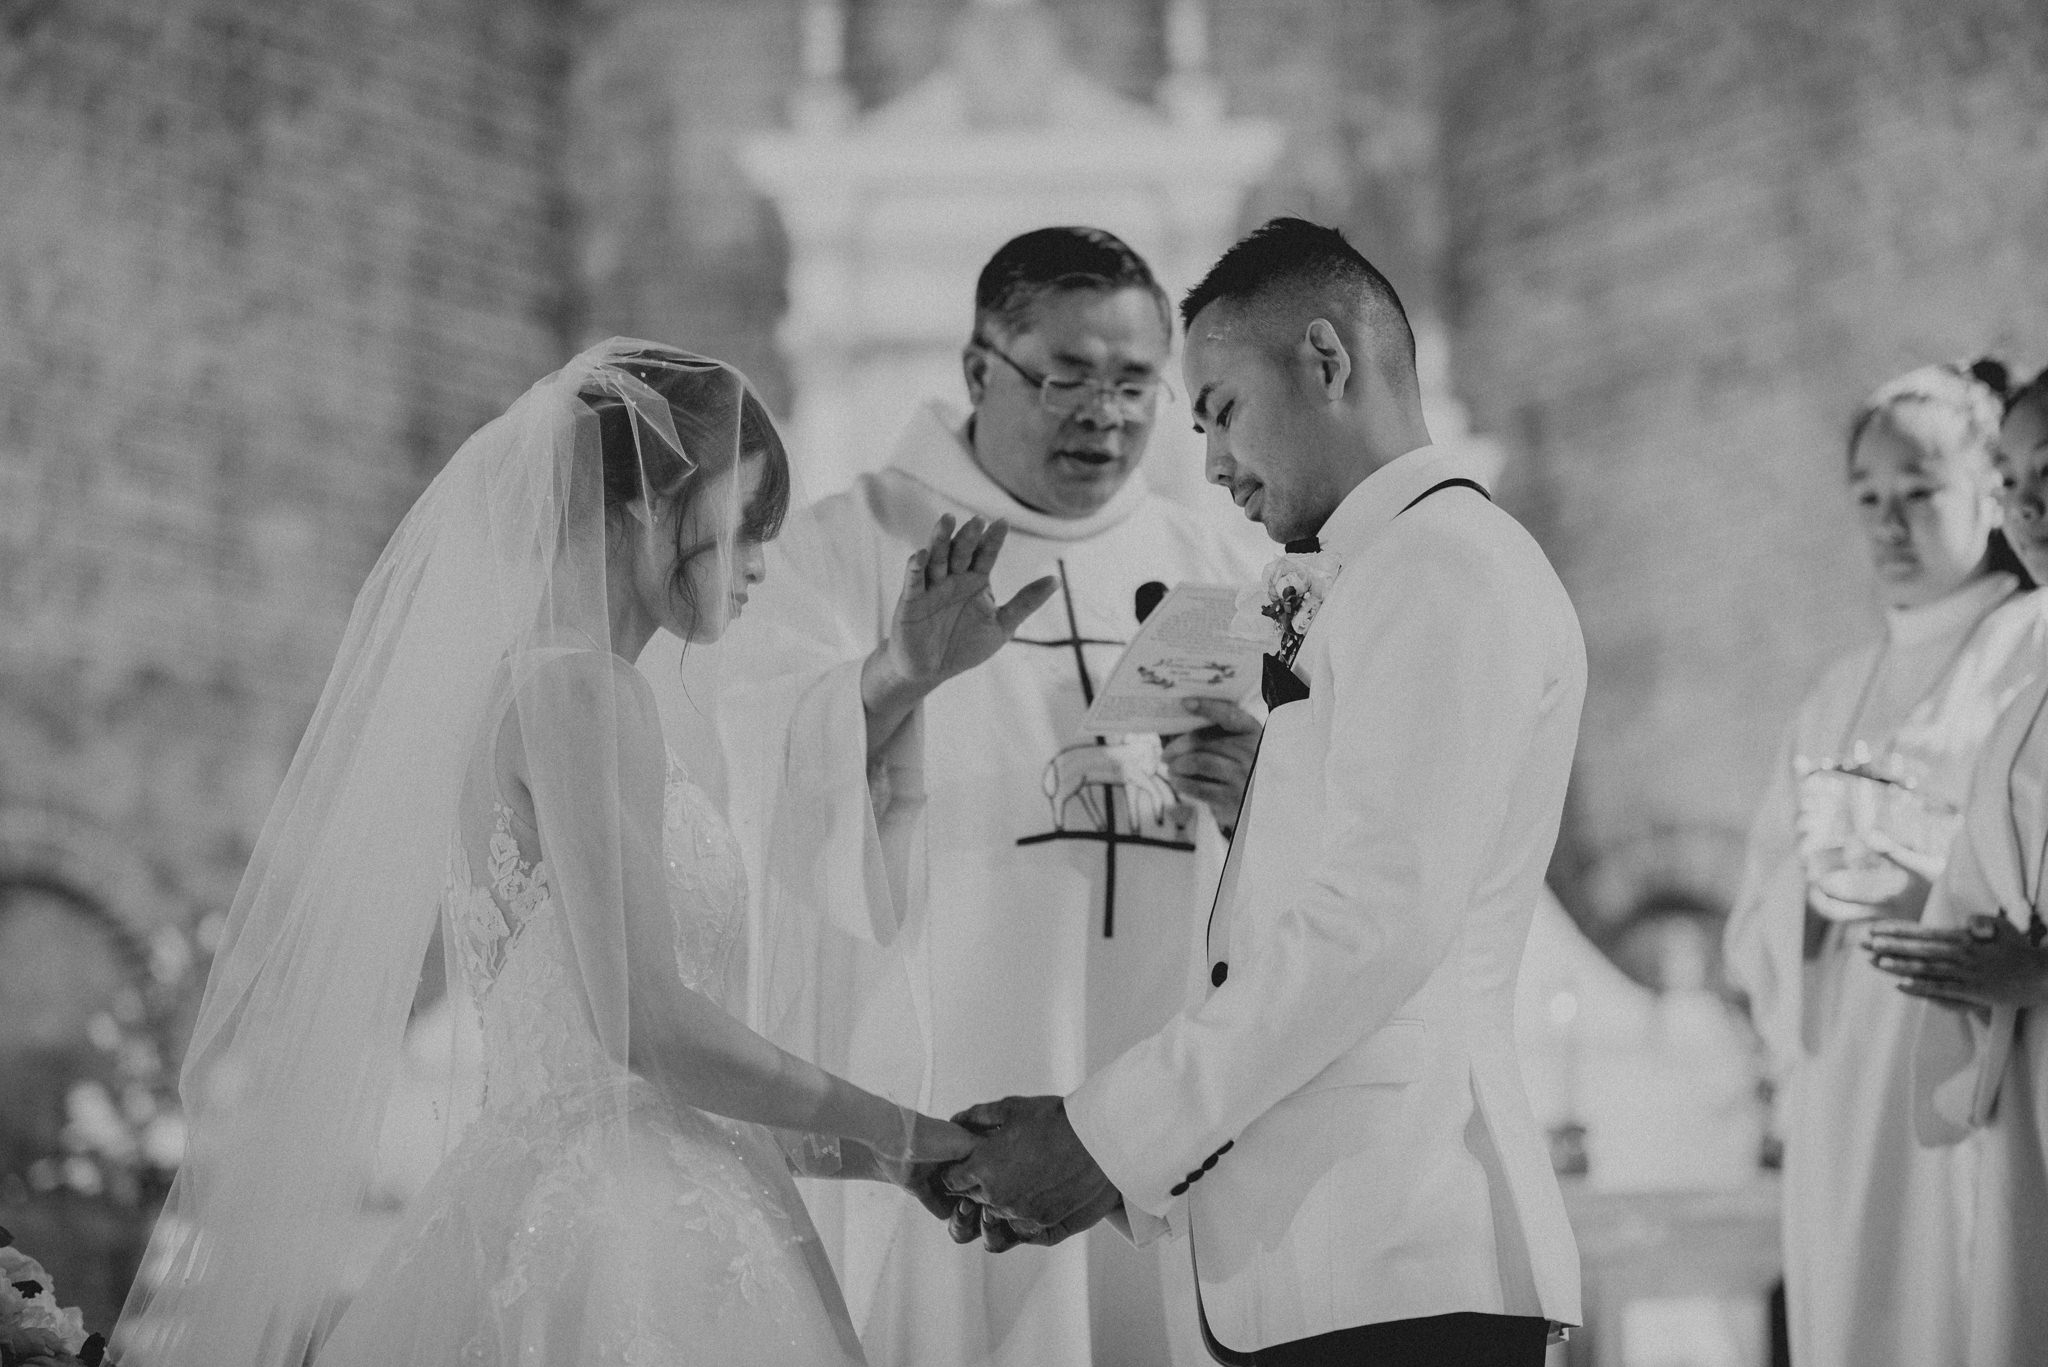 A Catholic priest prays for an Asian couple getting married